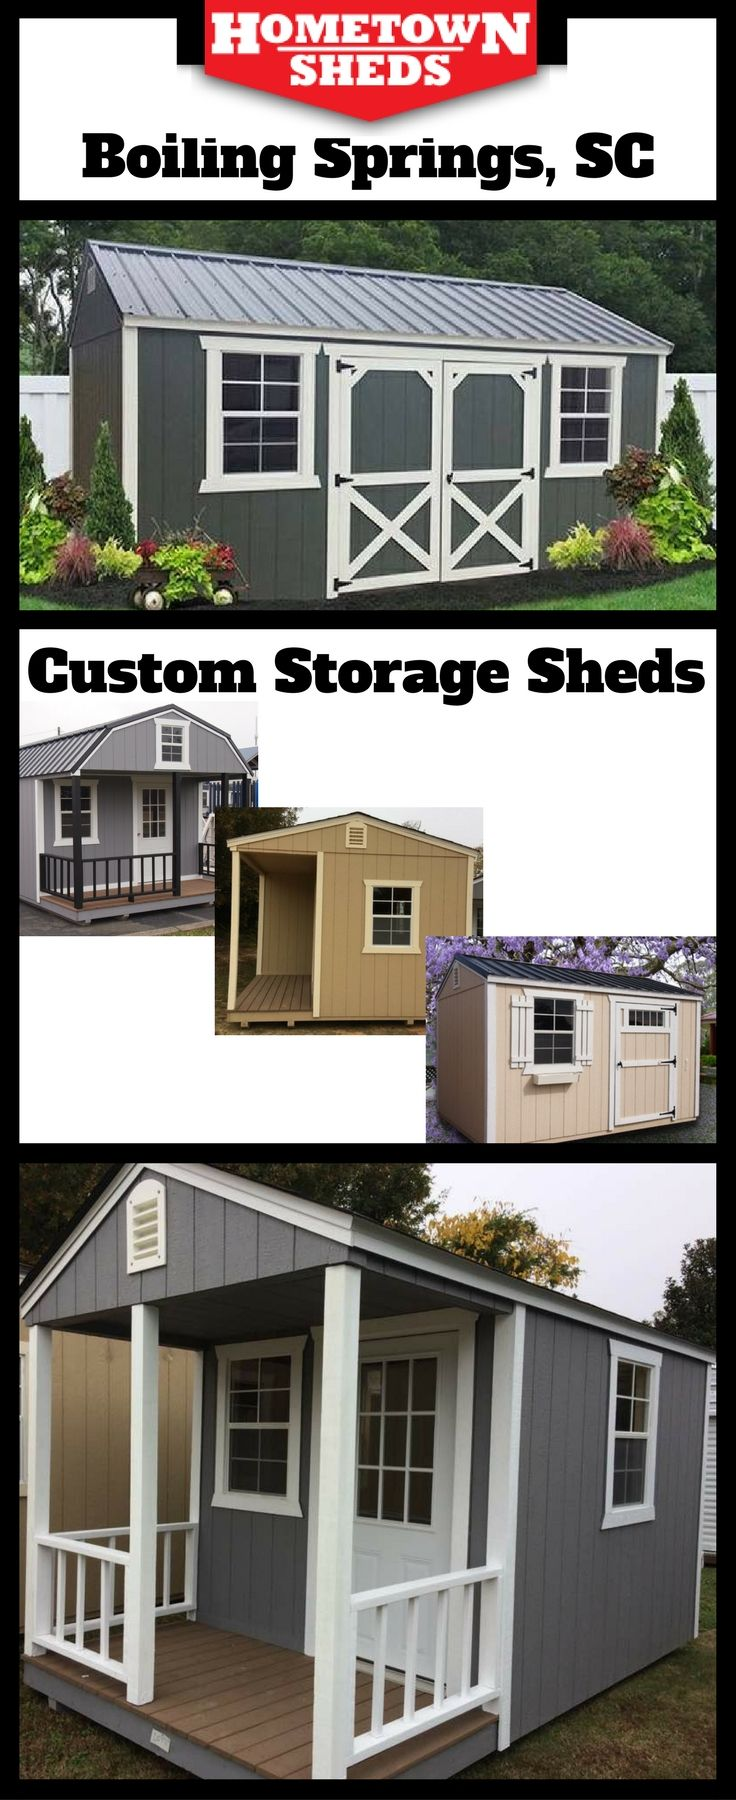 Whether you need a utility storage shed, a garden shed, a he shed or she shed. We can build it custom. 8X10 to 12X36; A-frame or barn; porch or standard; 8 foot walls or 6/12 pitch roof; add windows, doors, and electrical wiring.   People are even converting these sheds into tiny homes and tiny houses.   Stop by 2740 Boiling Springs Road, Boiling Springs to order your custom shed at no extra charge.  (864) 707-5311.